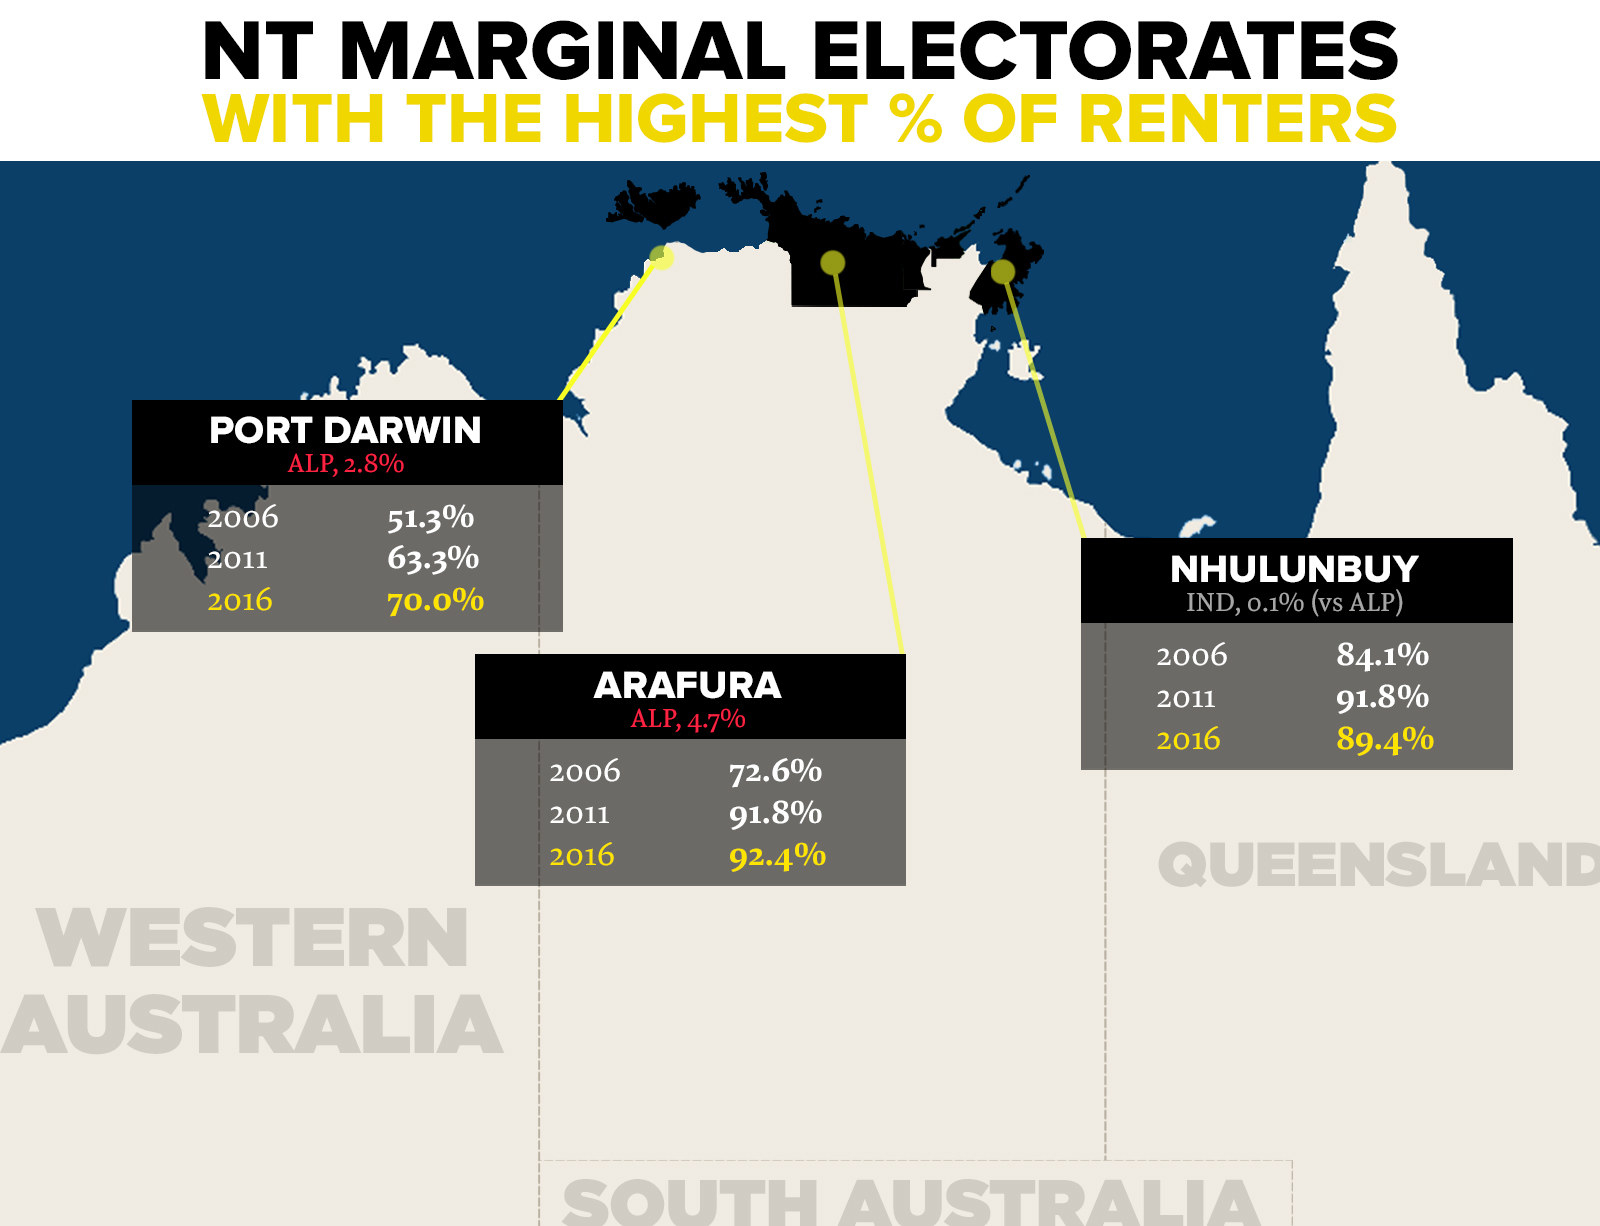 The NT has an unusually high concentration of rental properties. Renters have long been a significant chunk of the population, reaching 50.3% of households in 2016. The numbers of renters increased in all but two of the territory's marginal electorates between 2006 and 2011, and are above the national average in every marginal seat. But none of that has resulted in stronger renter protections. In fact, NT residents may enjoy the weakest renters' rights in Australia. Reasons for that may be that it doesn't have a tenants' union, that its residents are geographically spread out, and that many renters may not be longterm NT residents.